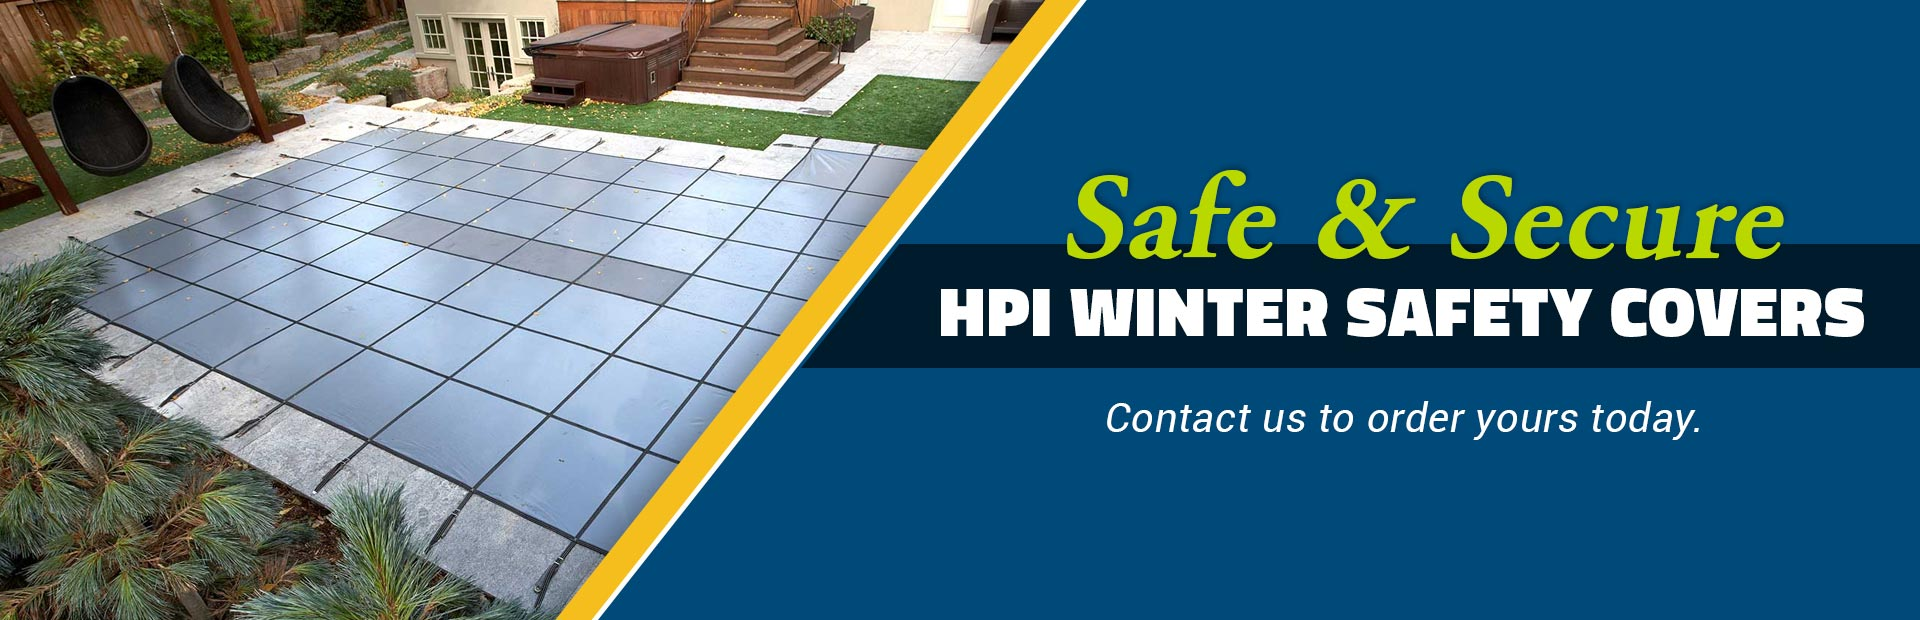 HPI Winter Safety Covers: Contact us to order yours today.